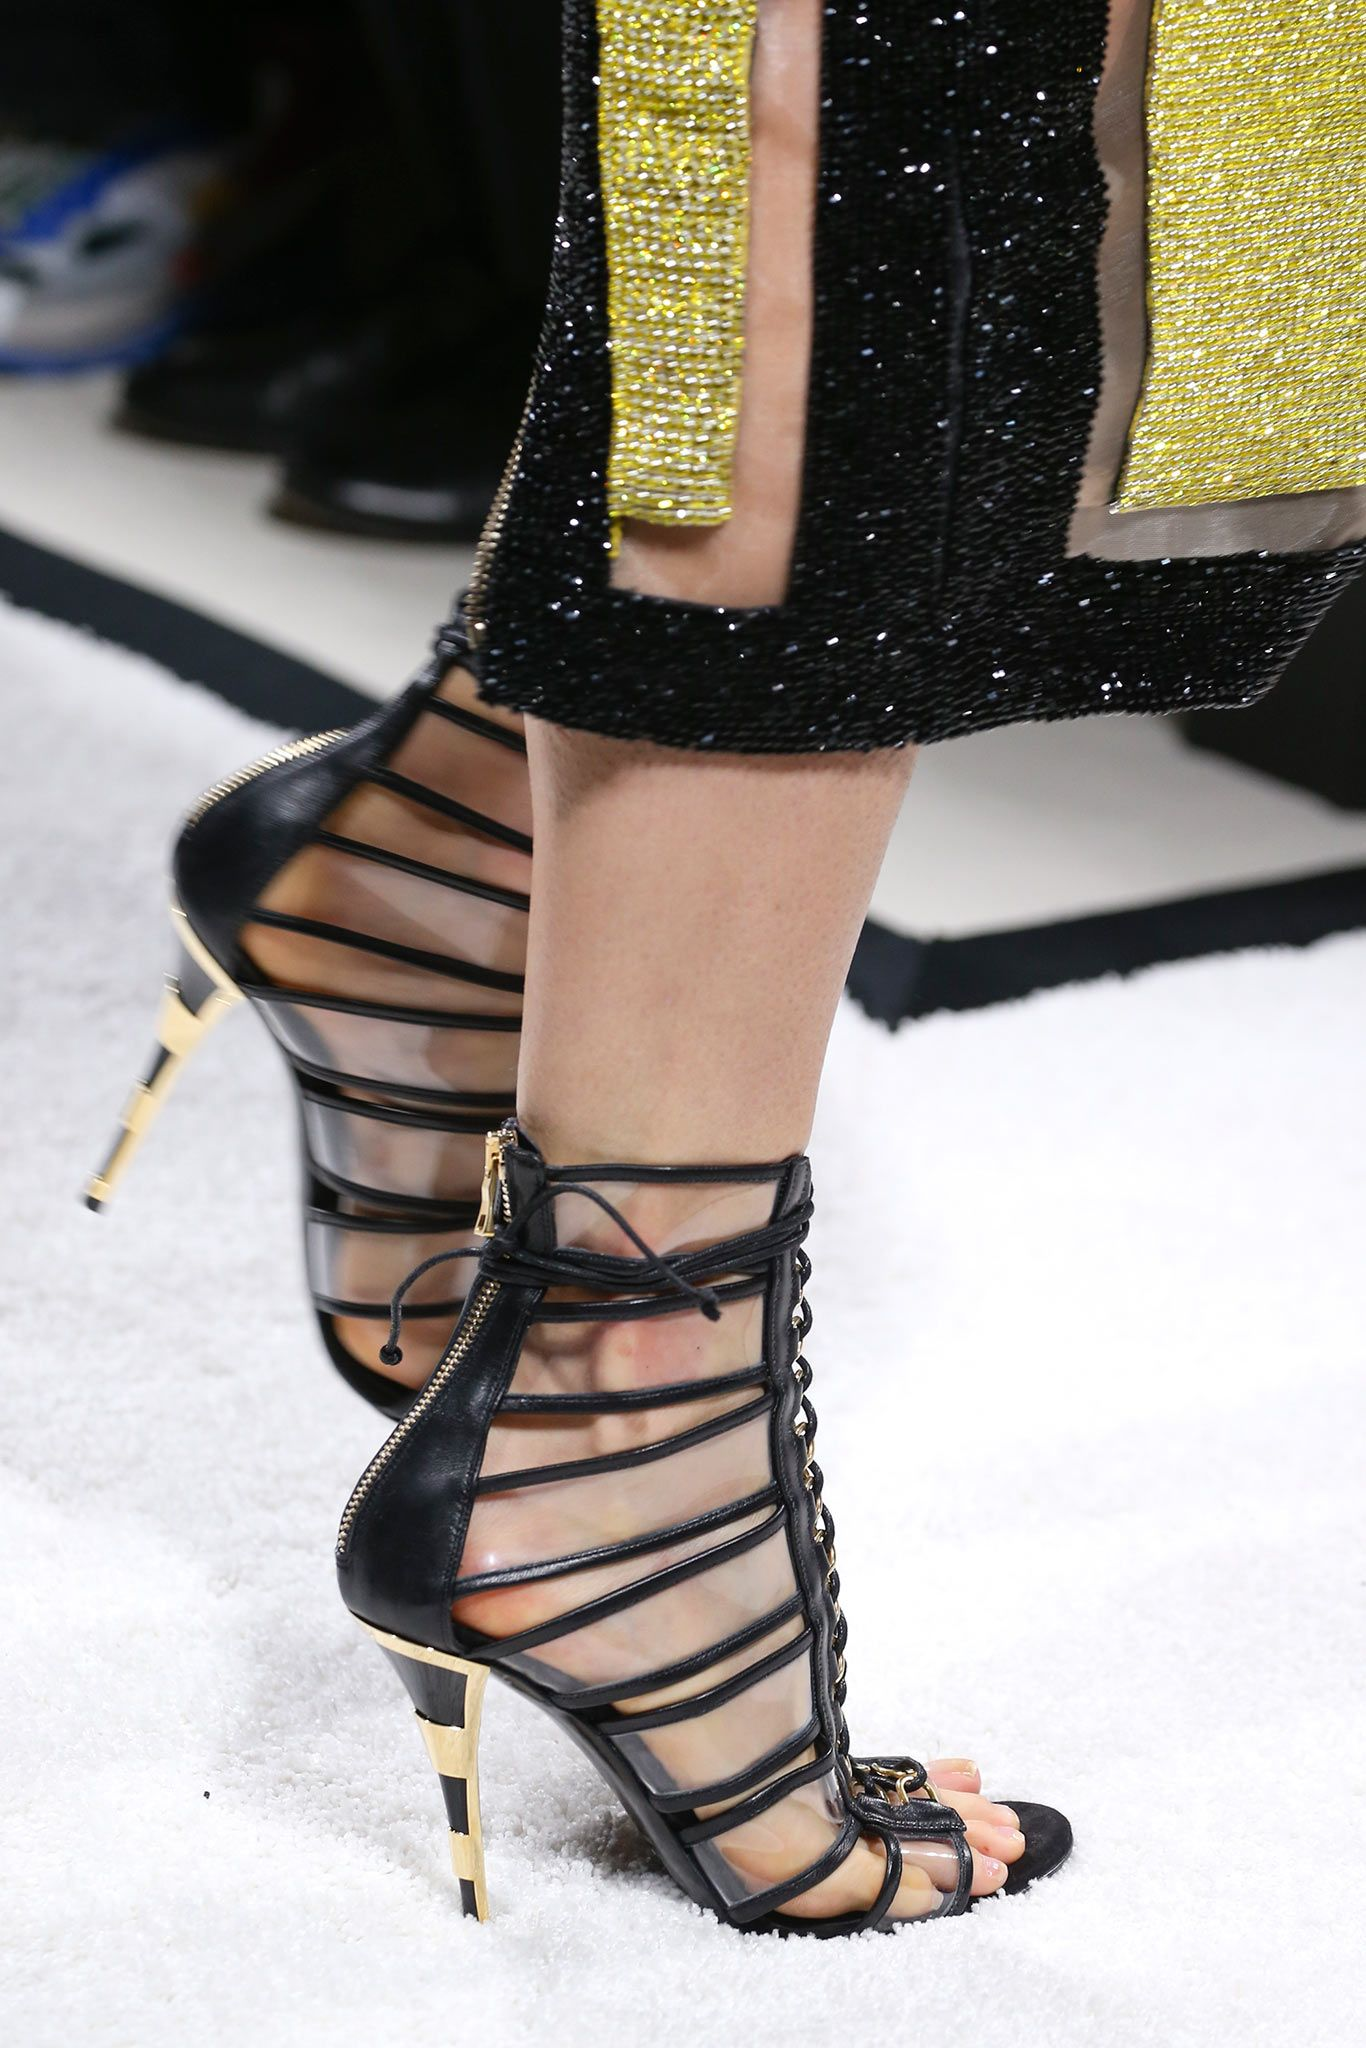 7774332d080d Balmain Spring 2015 Paris Fashion Show